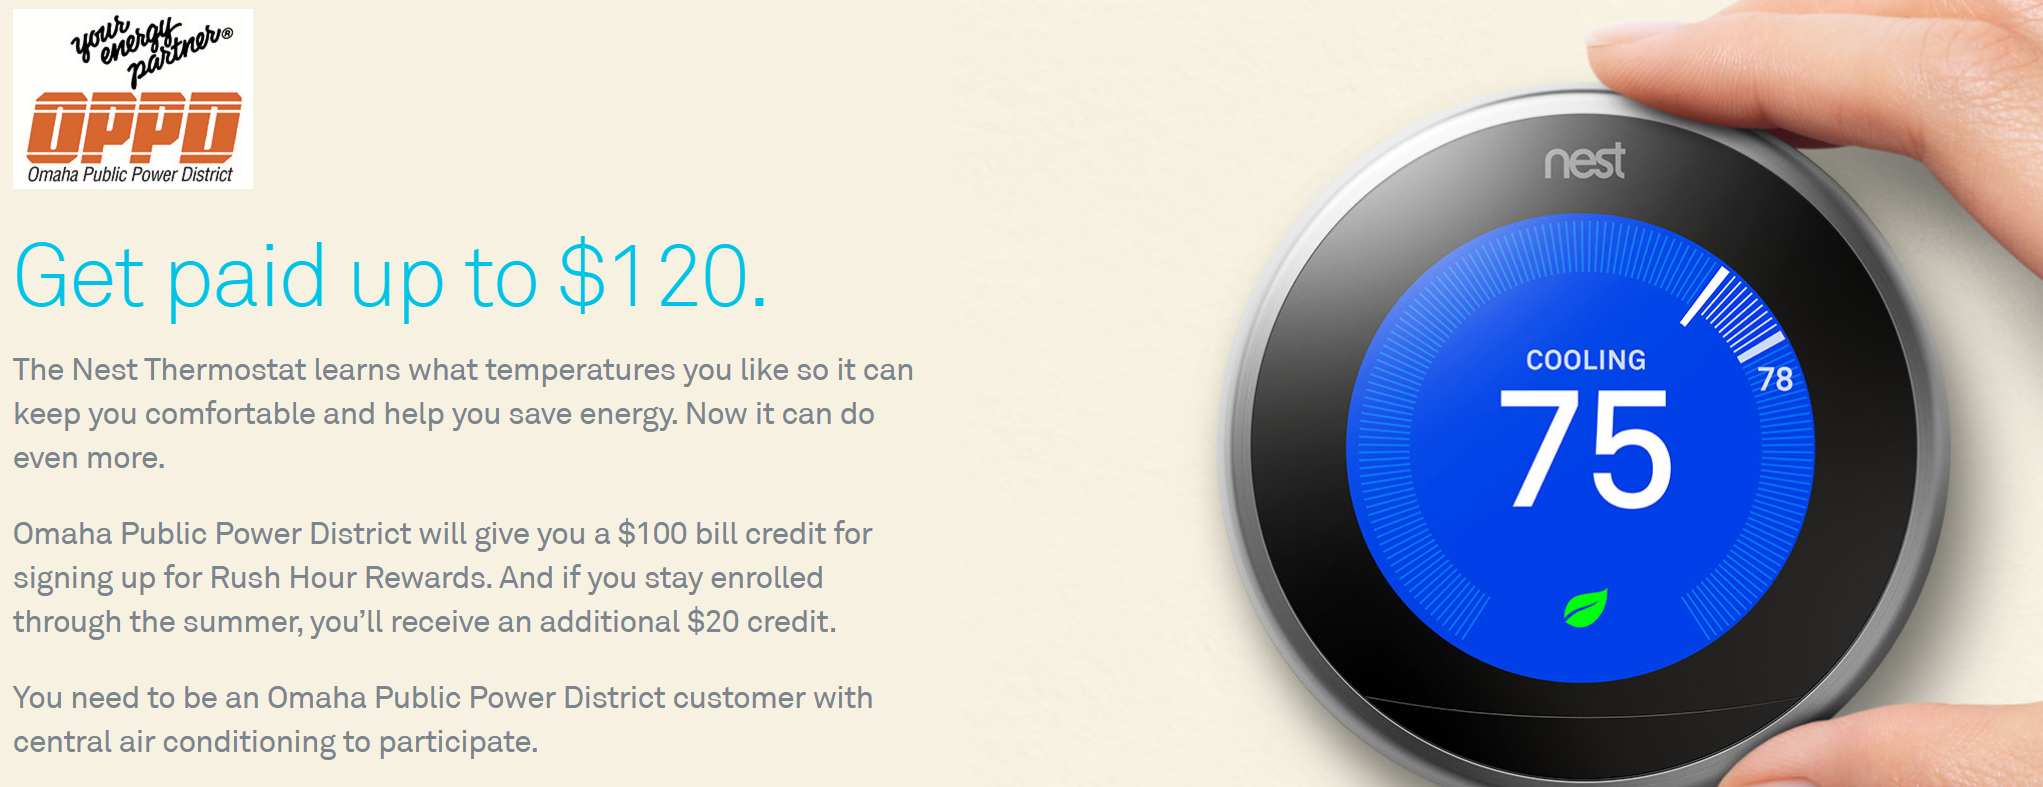 Certified Nest Pros - OPPD credits your bill $120 for installing a Nest Thermostat in your home!